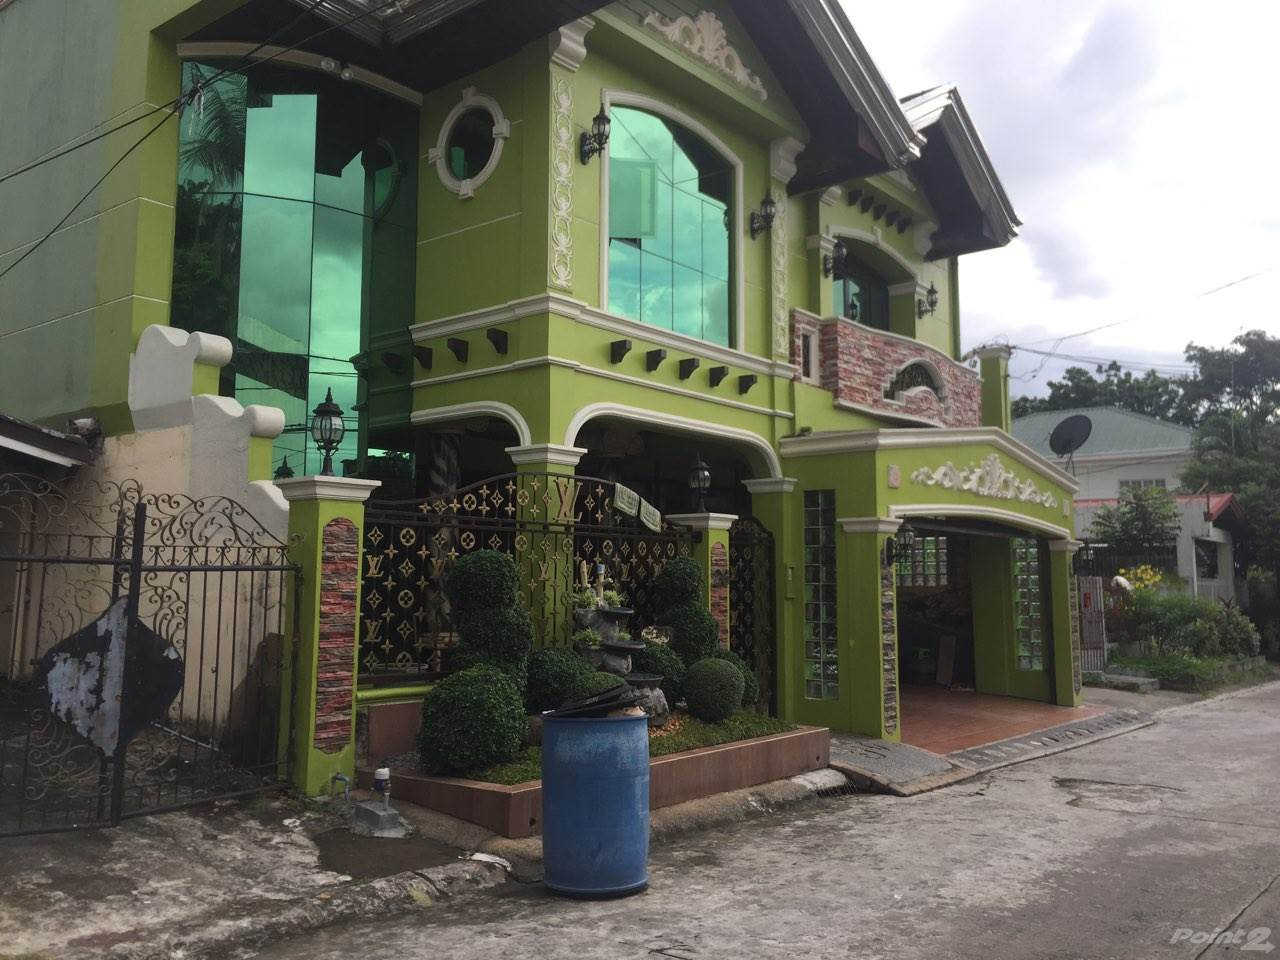 House for sale Las Pinas, Philippines Pilar Village, Las Pinas